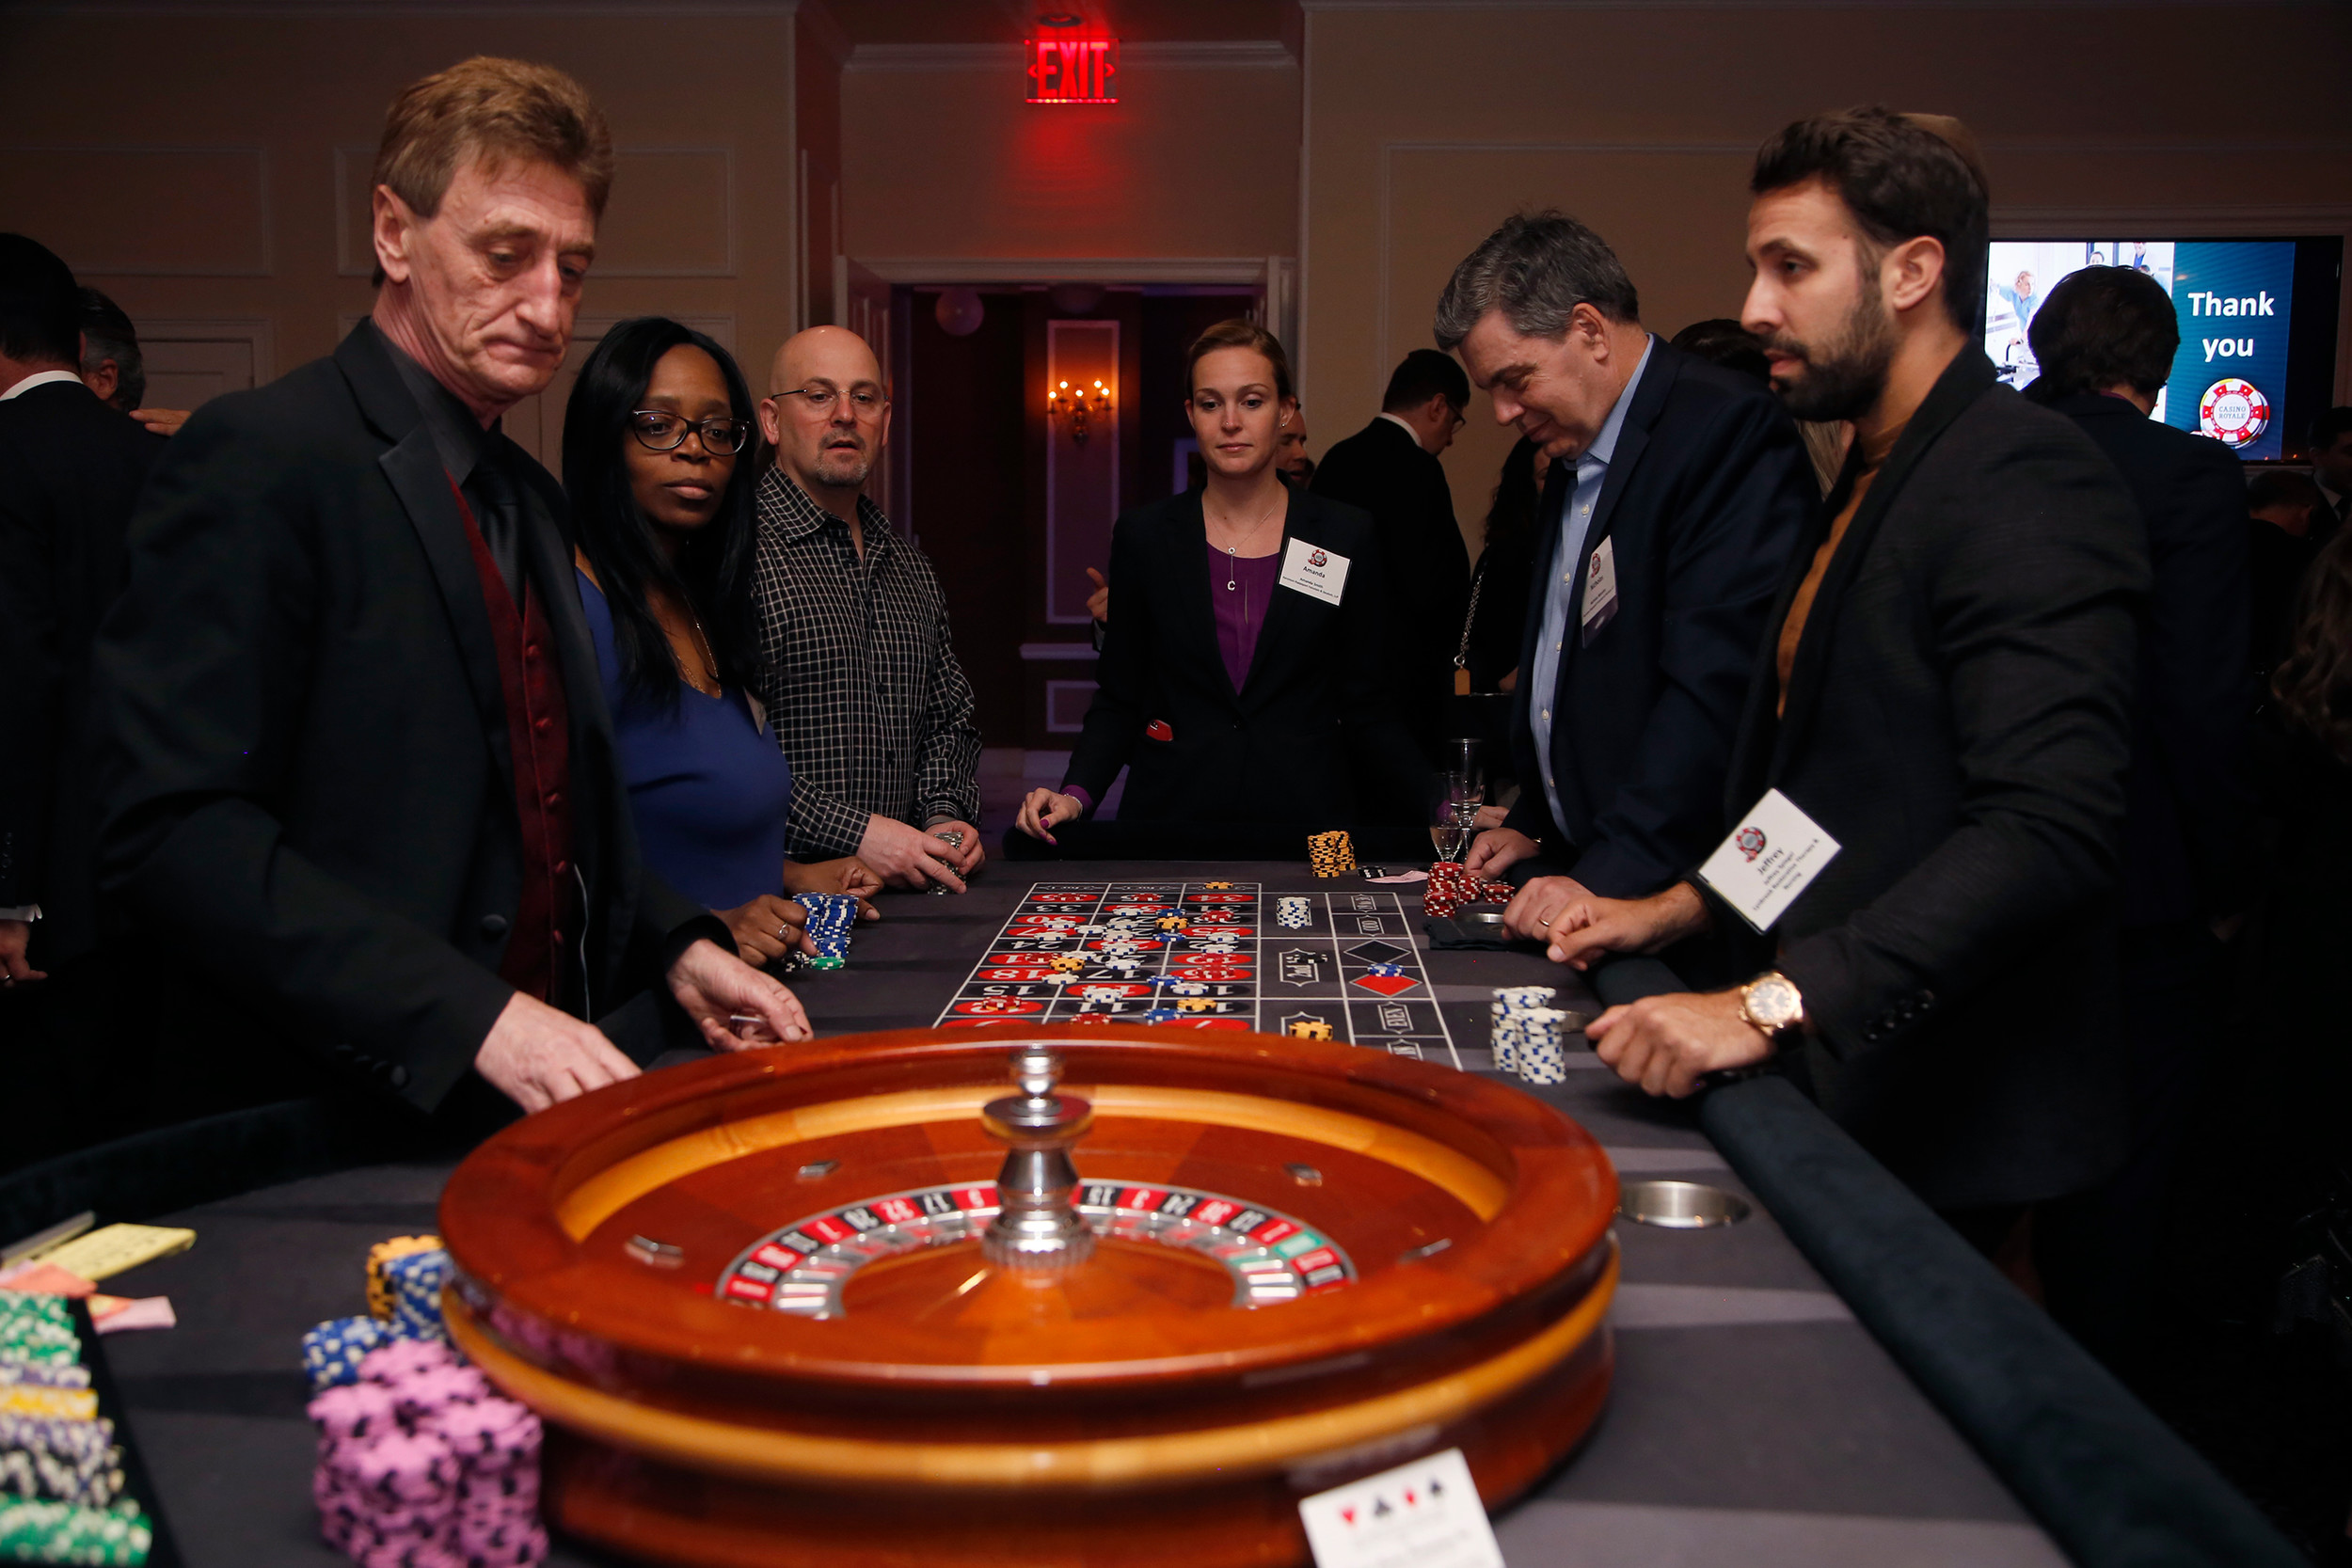 Round and round went the roulette ball as onlookers see if their picked the right number.